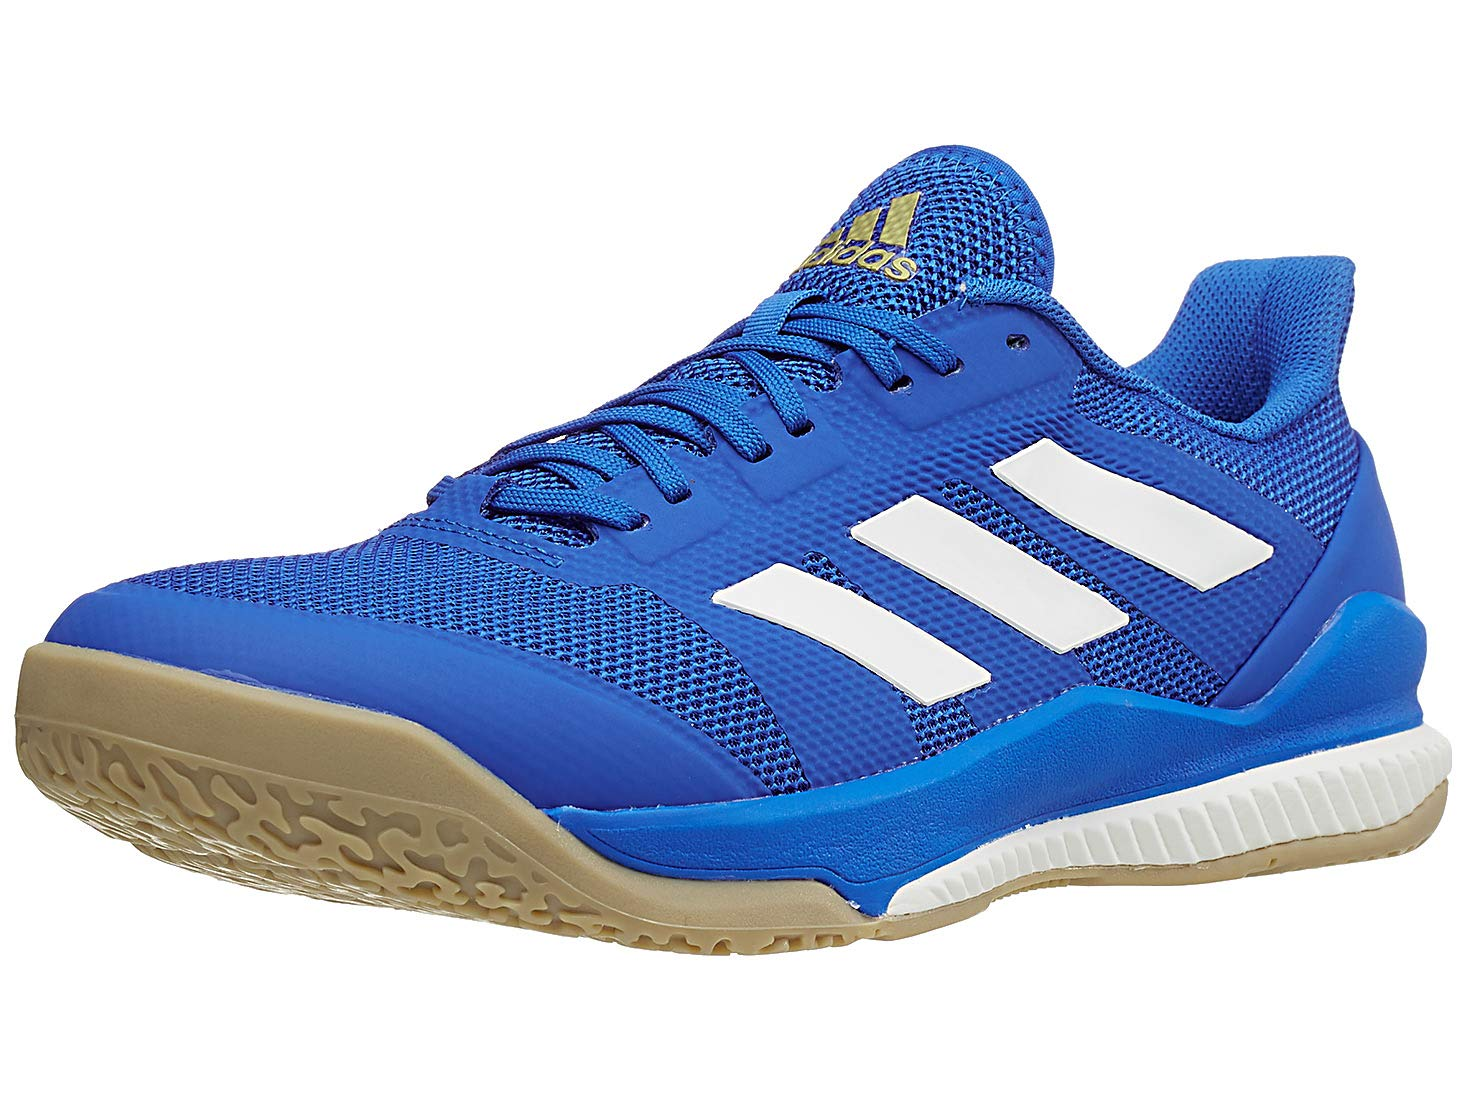 adidas Men's Stabil Bounce Volleyball Shoe, Blue/Off White/Gold Metallic, 10 M US by adidas